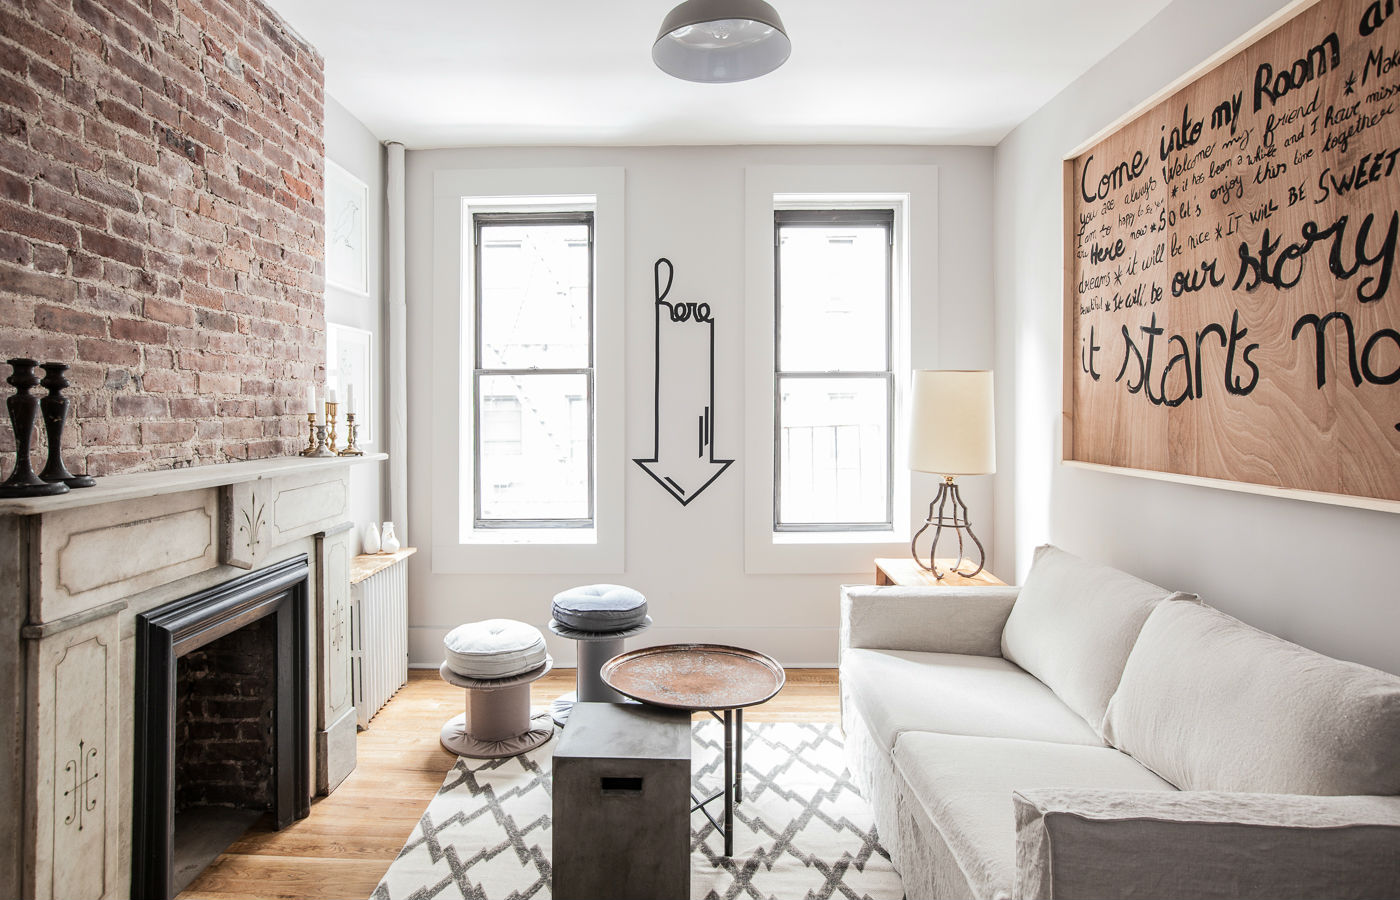 Image gallery nyc apartment interior for Buy new york apartment